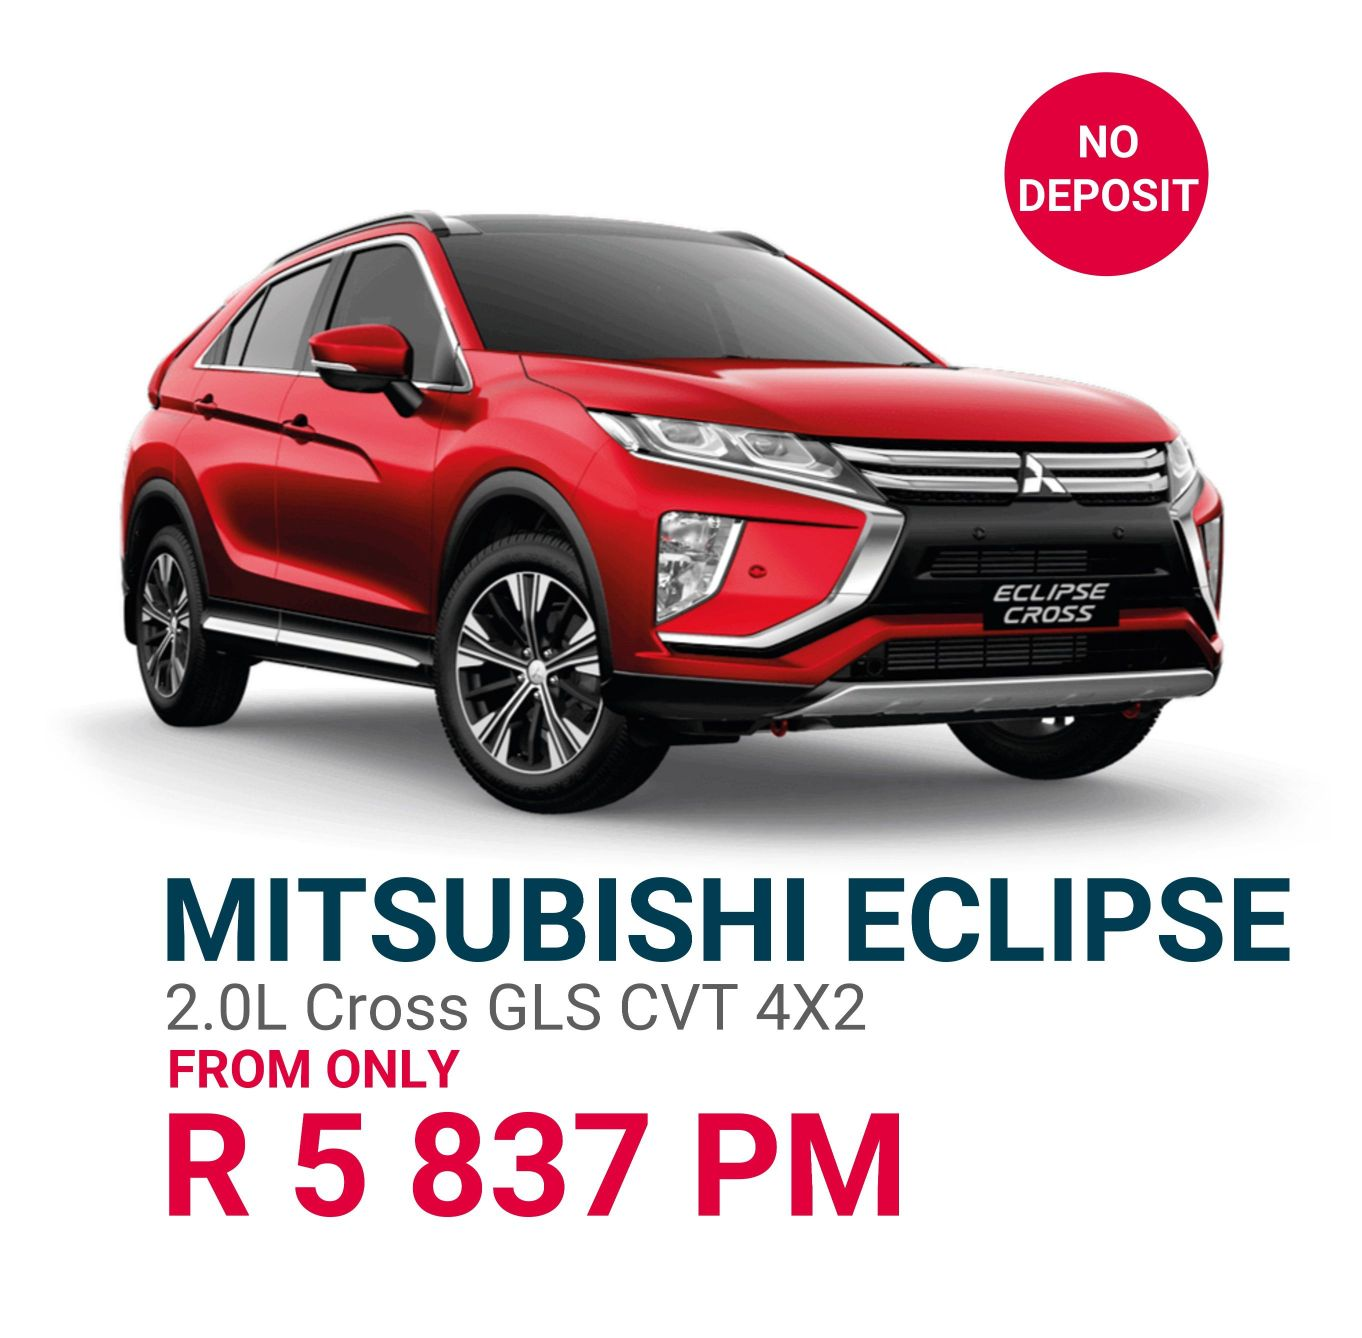 mitsubishi-eclipse-cross-from-only-r5-837pm